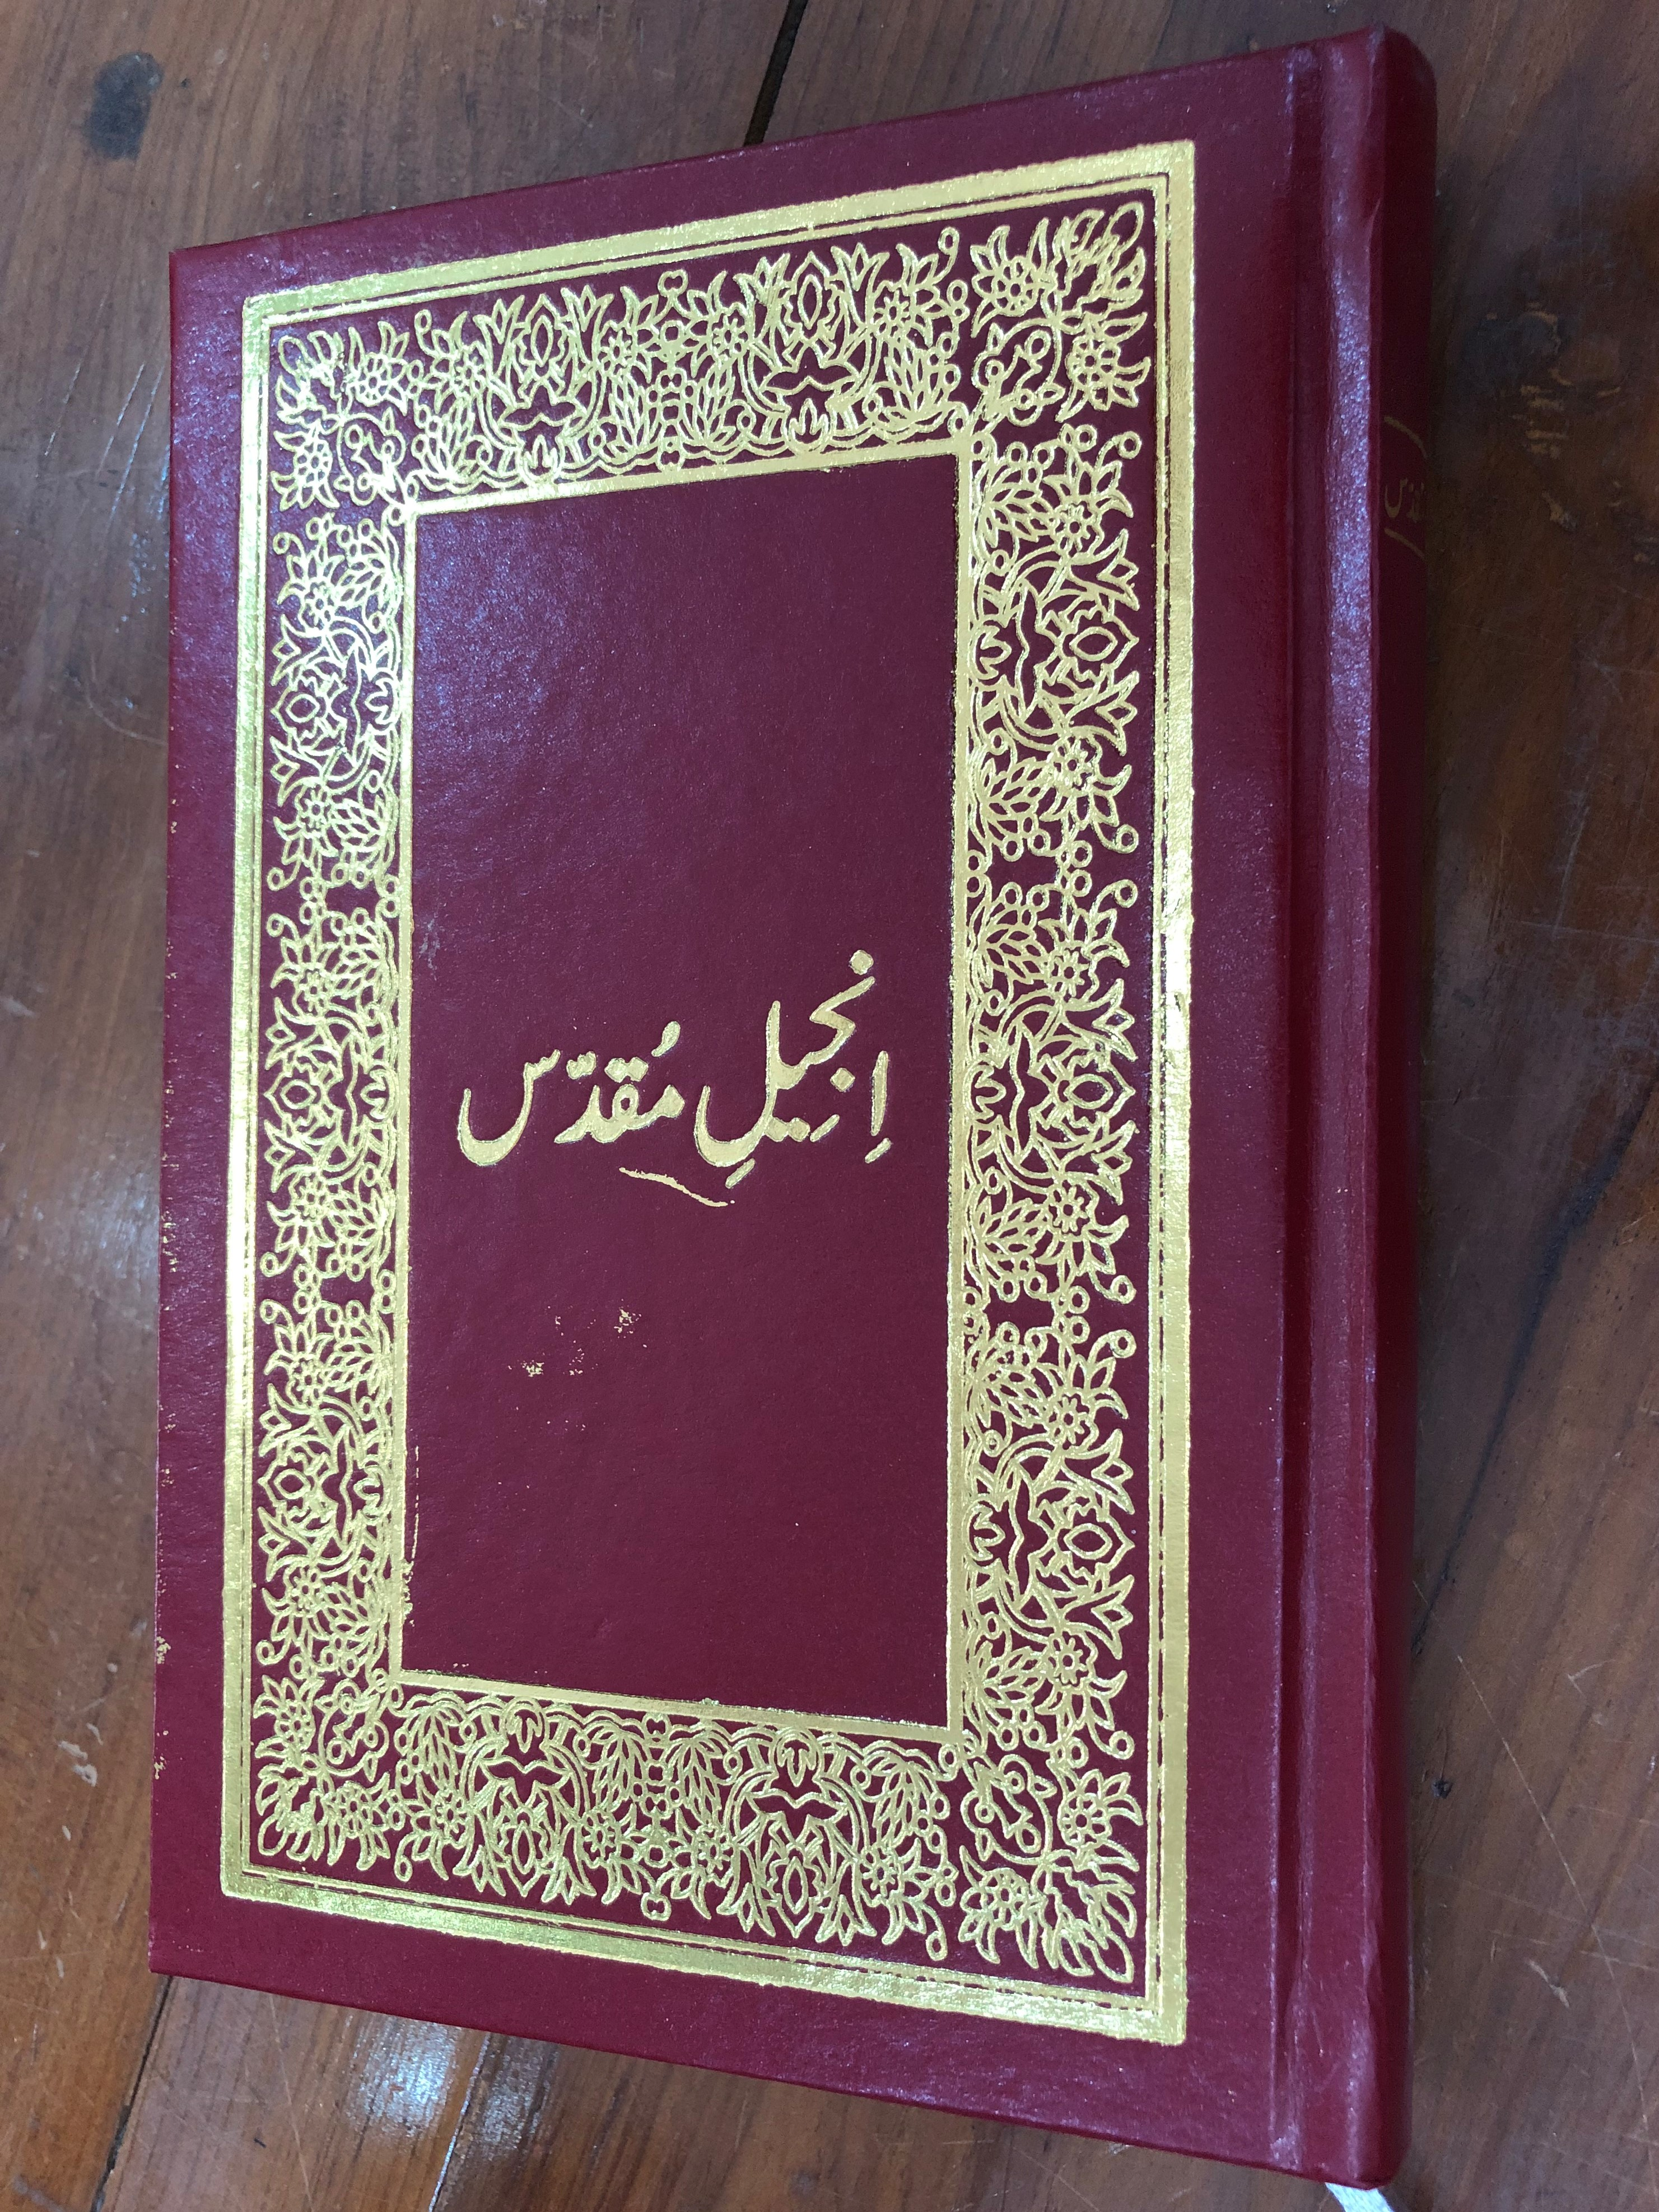 the-new-testament-urdu-pakistan-bible-society-2018-hardcover-burgundy-1-.jpg